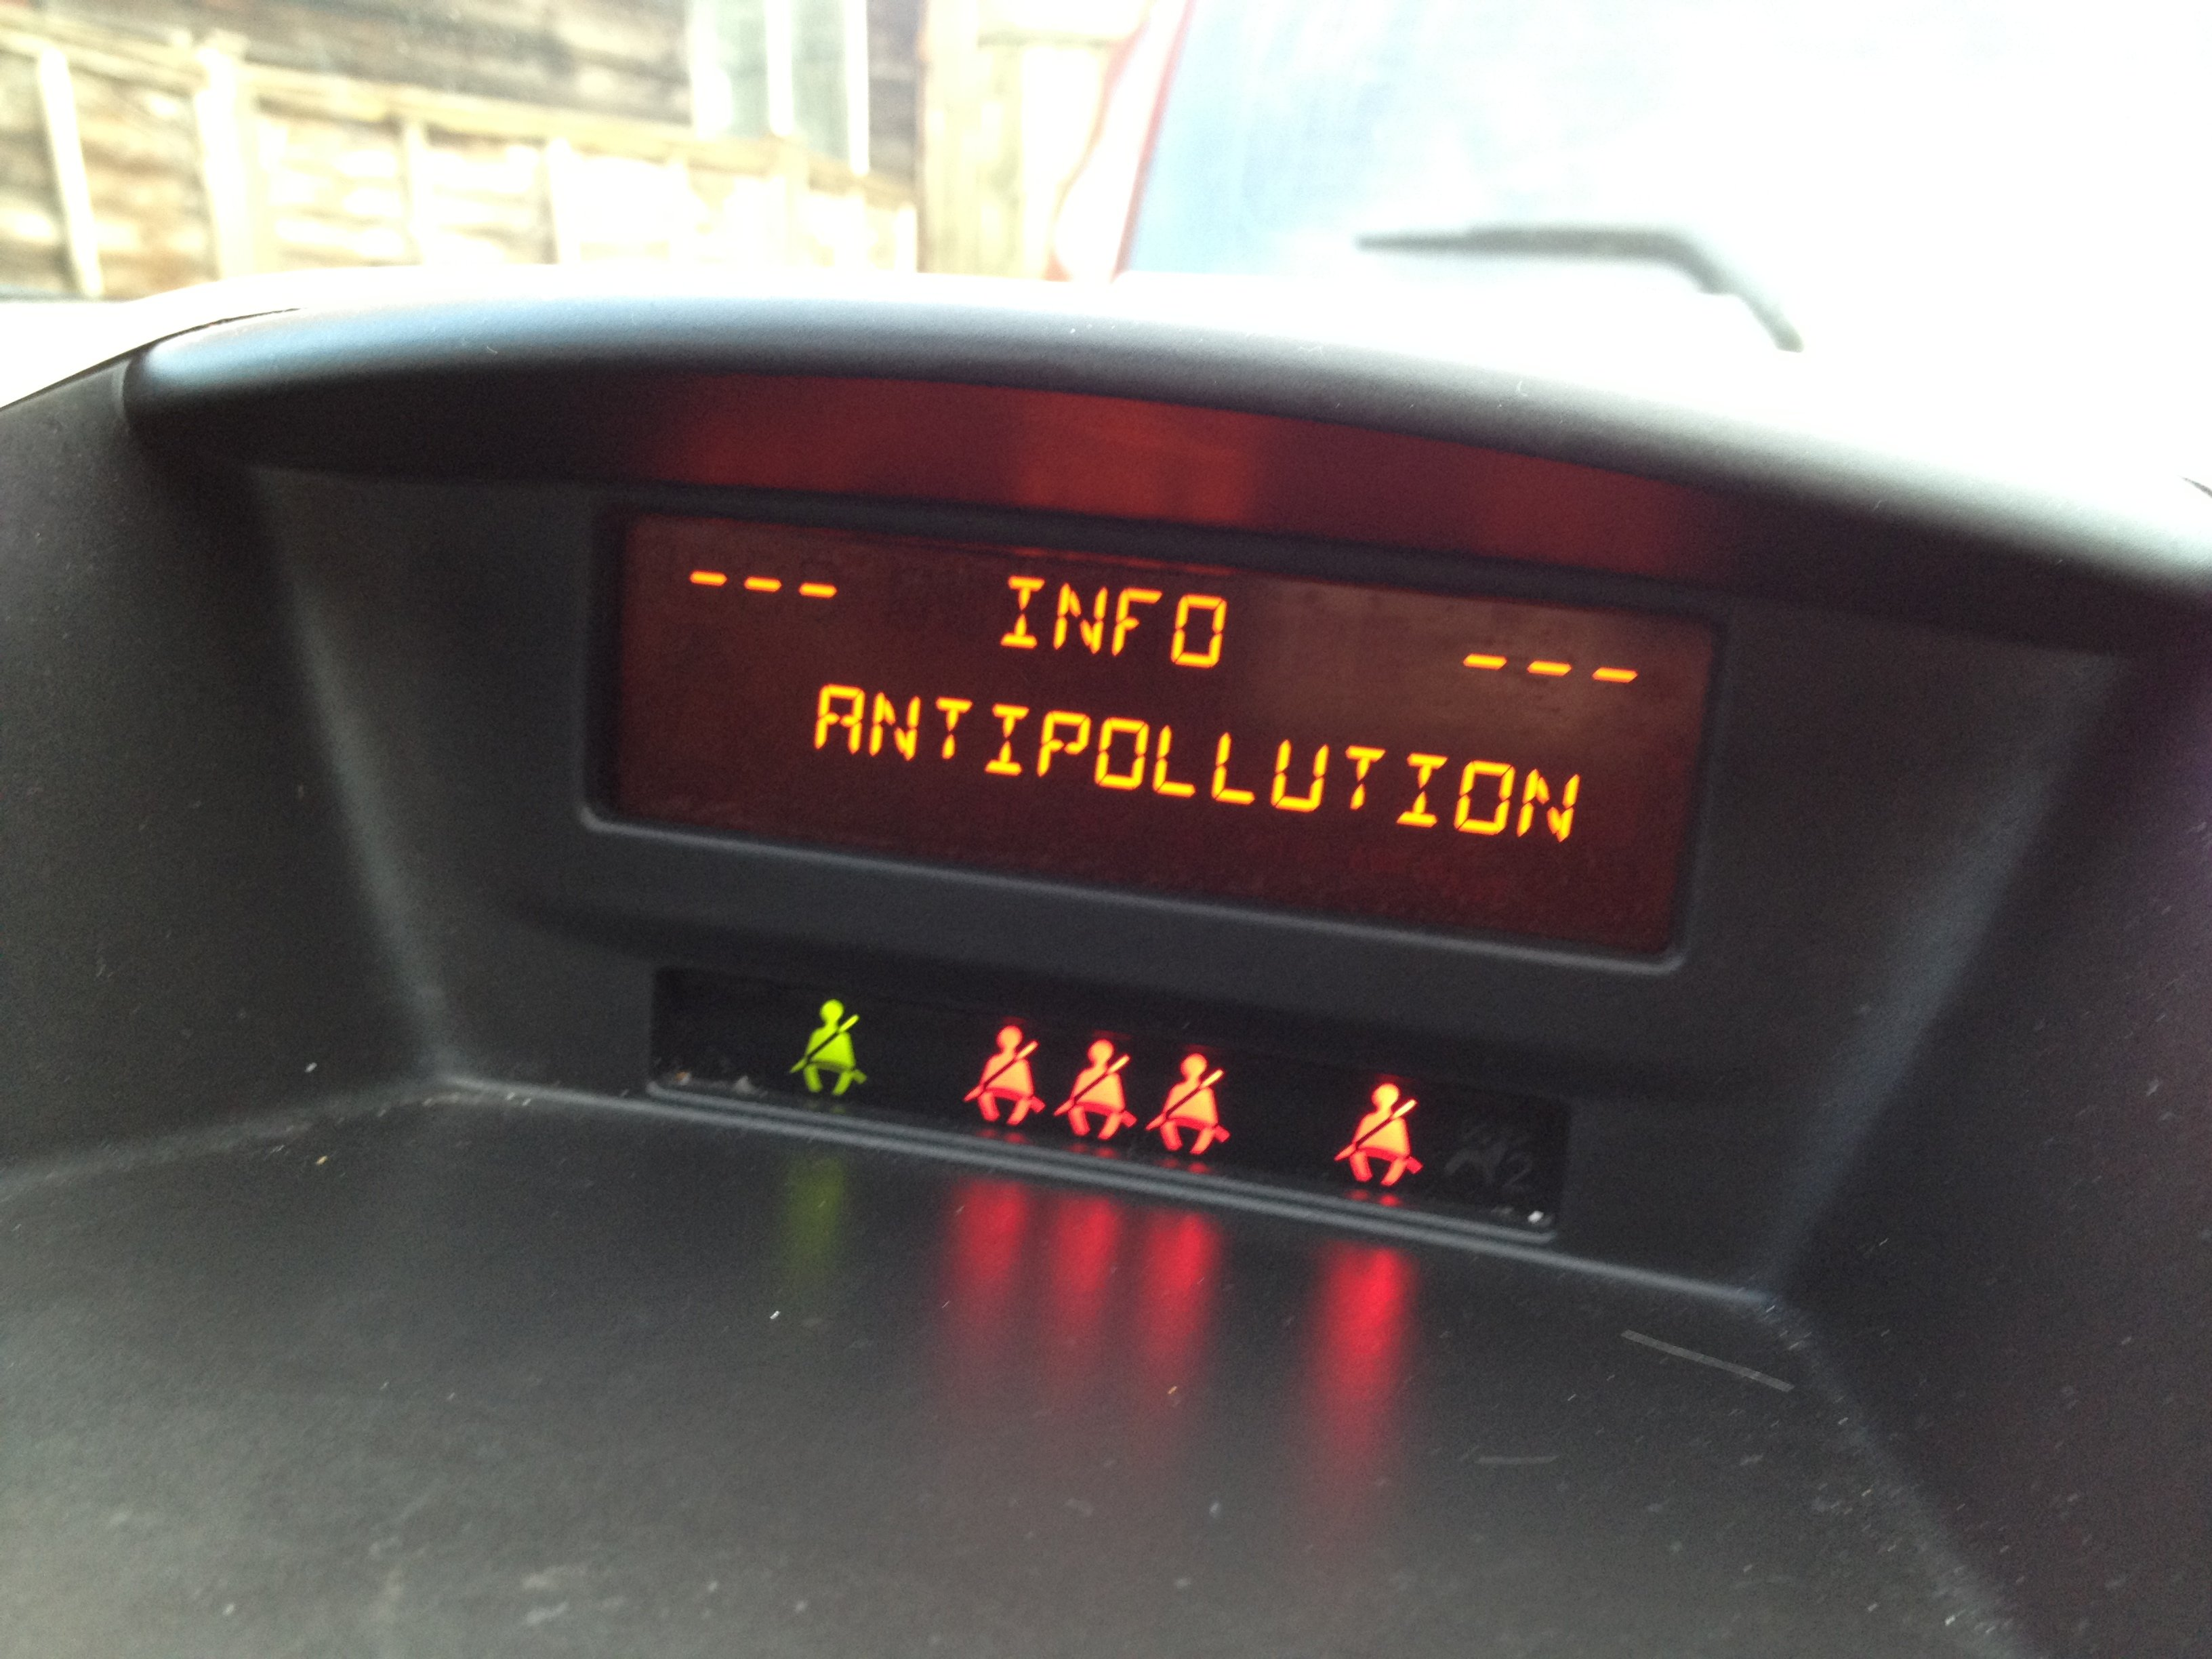 im getting and error message on my peugeot 207 1 4 16v petrol anti rh justanswer com Peugeot 406 Peugeot 207 CC